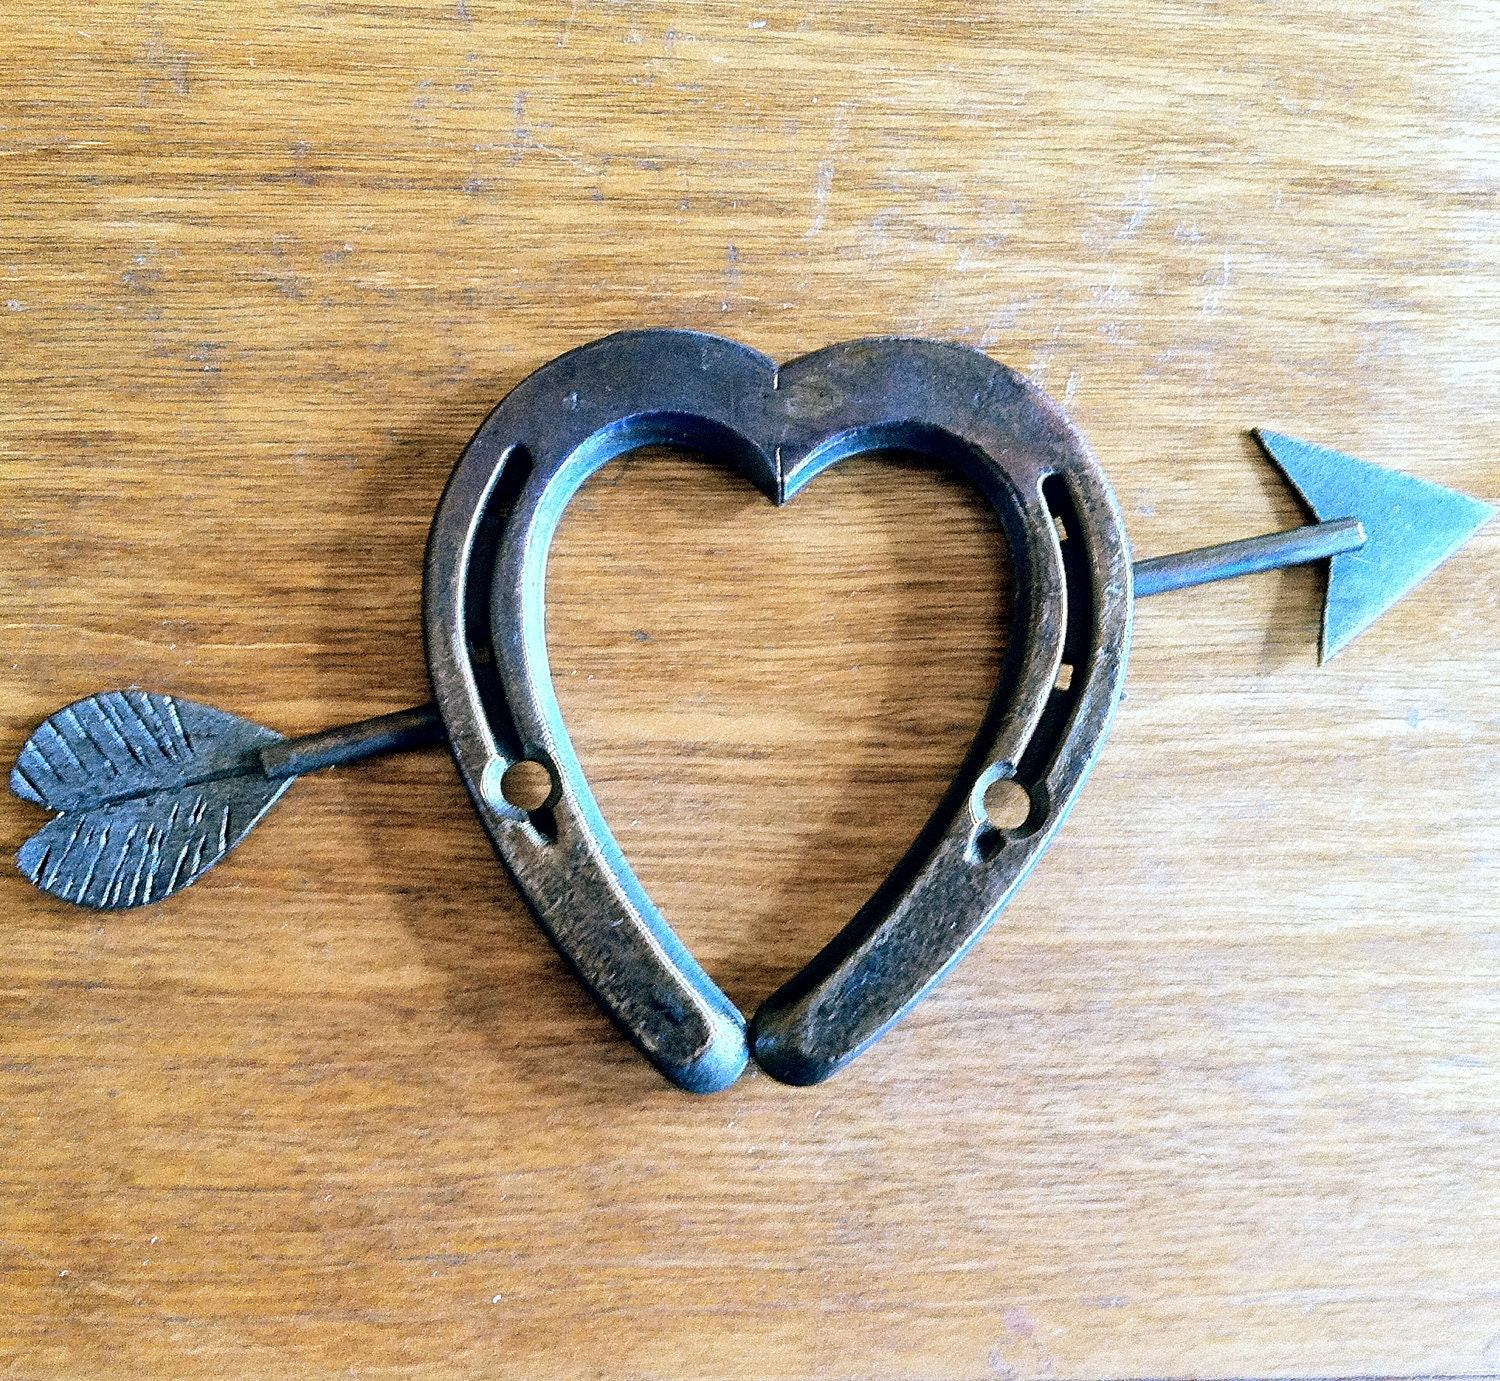 Life at 2027 iron anniversary gifts for 6 years for Things you can make with horseshoes